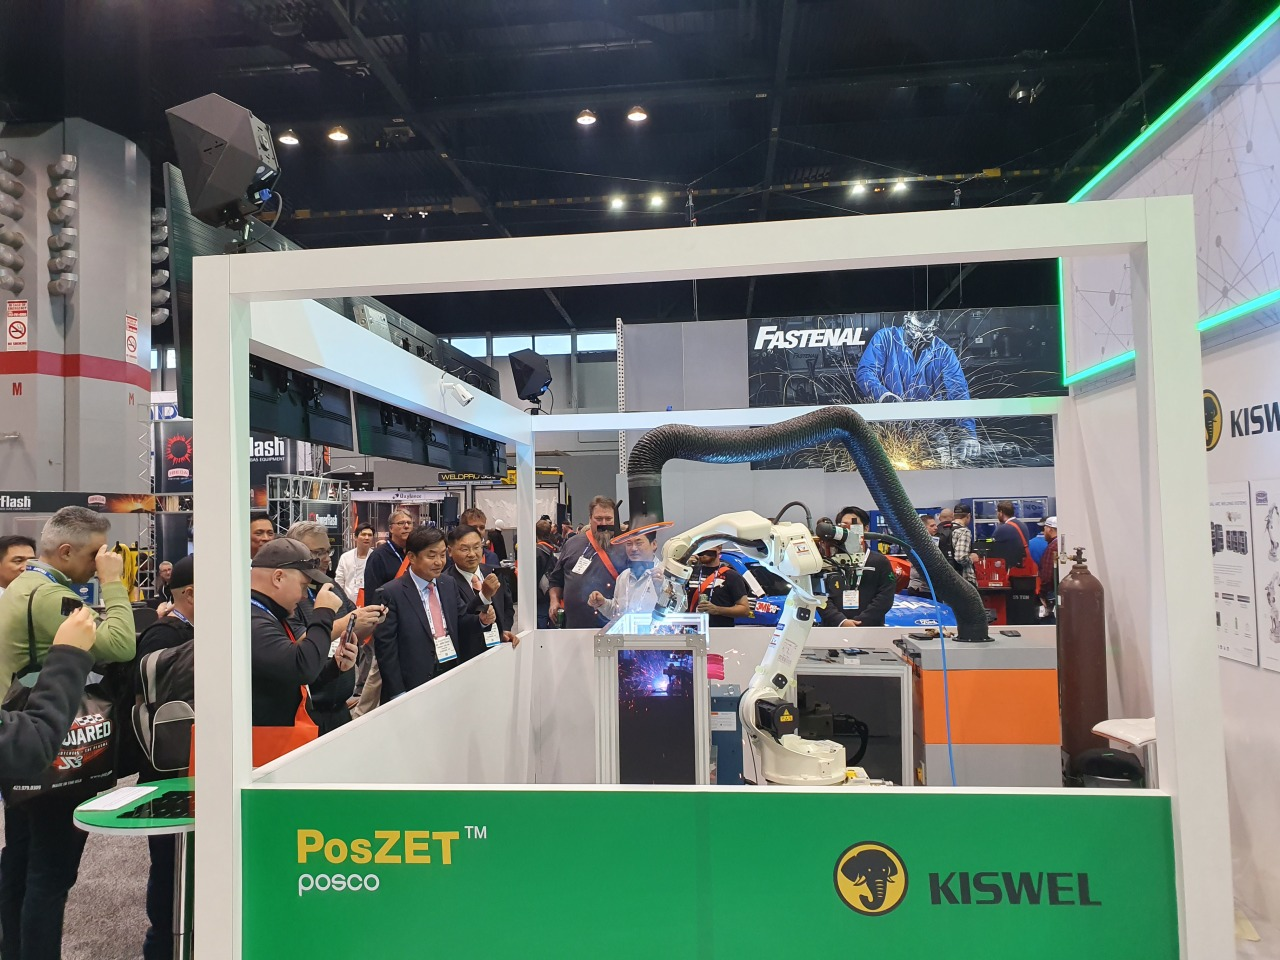 Visitors look at PosZET, an ultra-high strength steel plate welding solution for automobiles, developed by Posco and Kiswel, at Fabtech 2019 in Chicago on Nov. 11. (Posco)